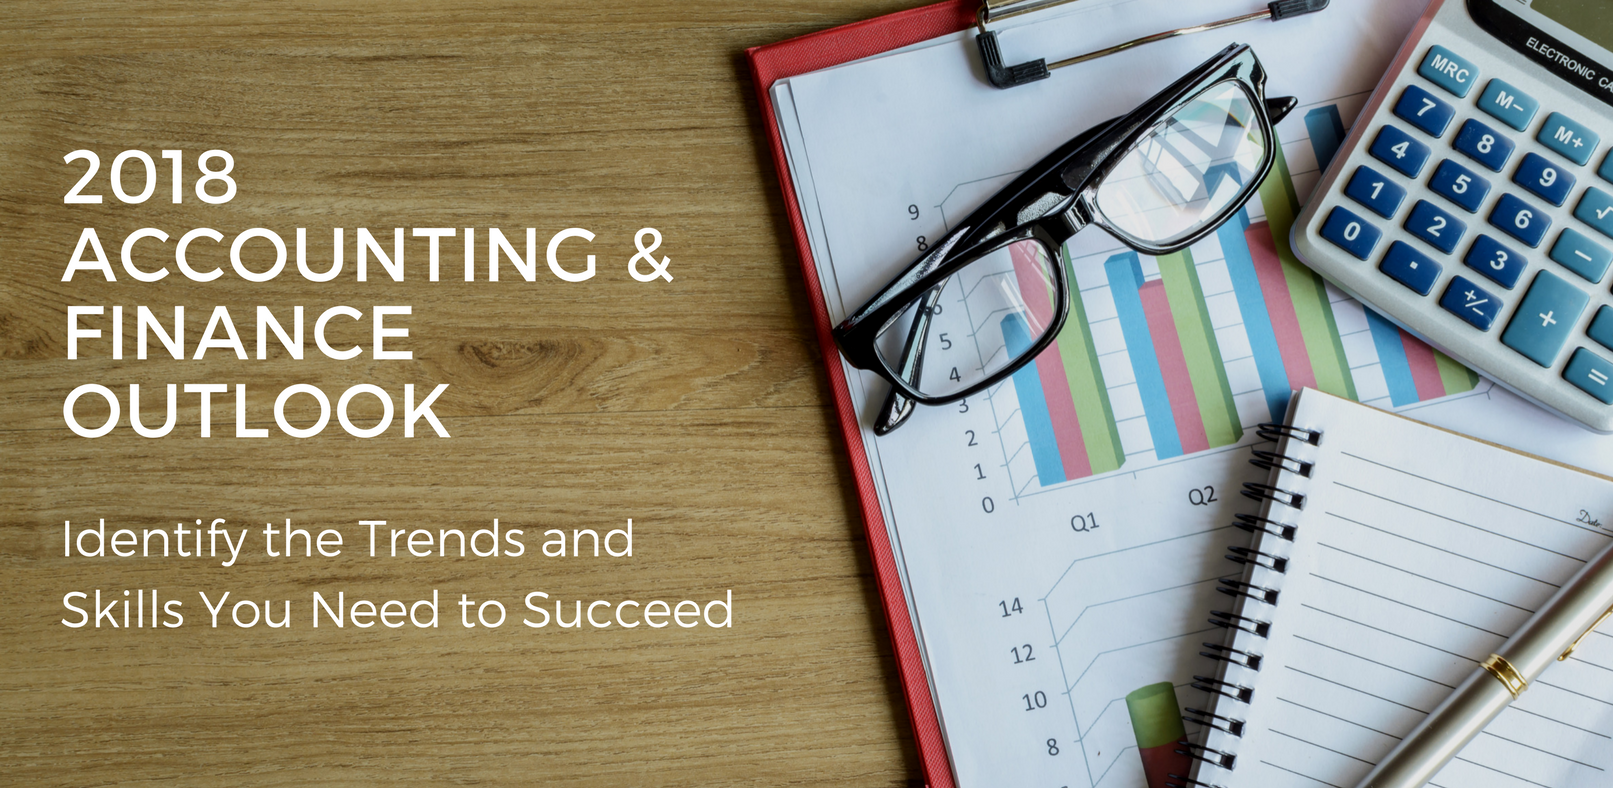 2018 Accounting and Finance Skills and Trends